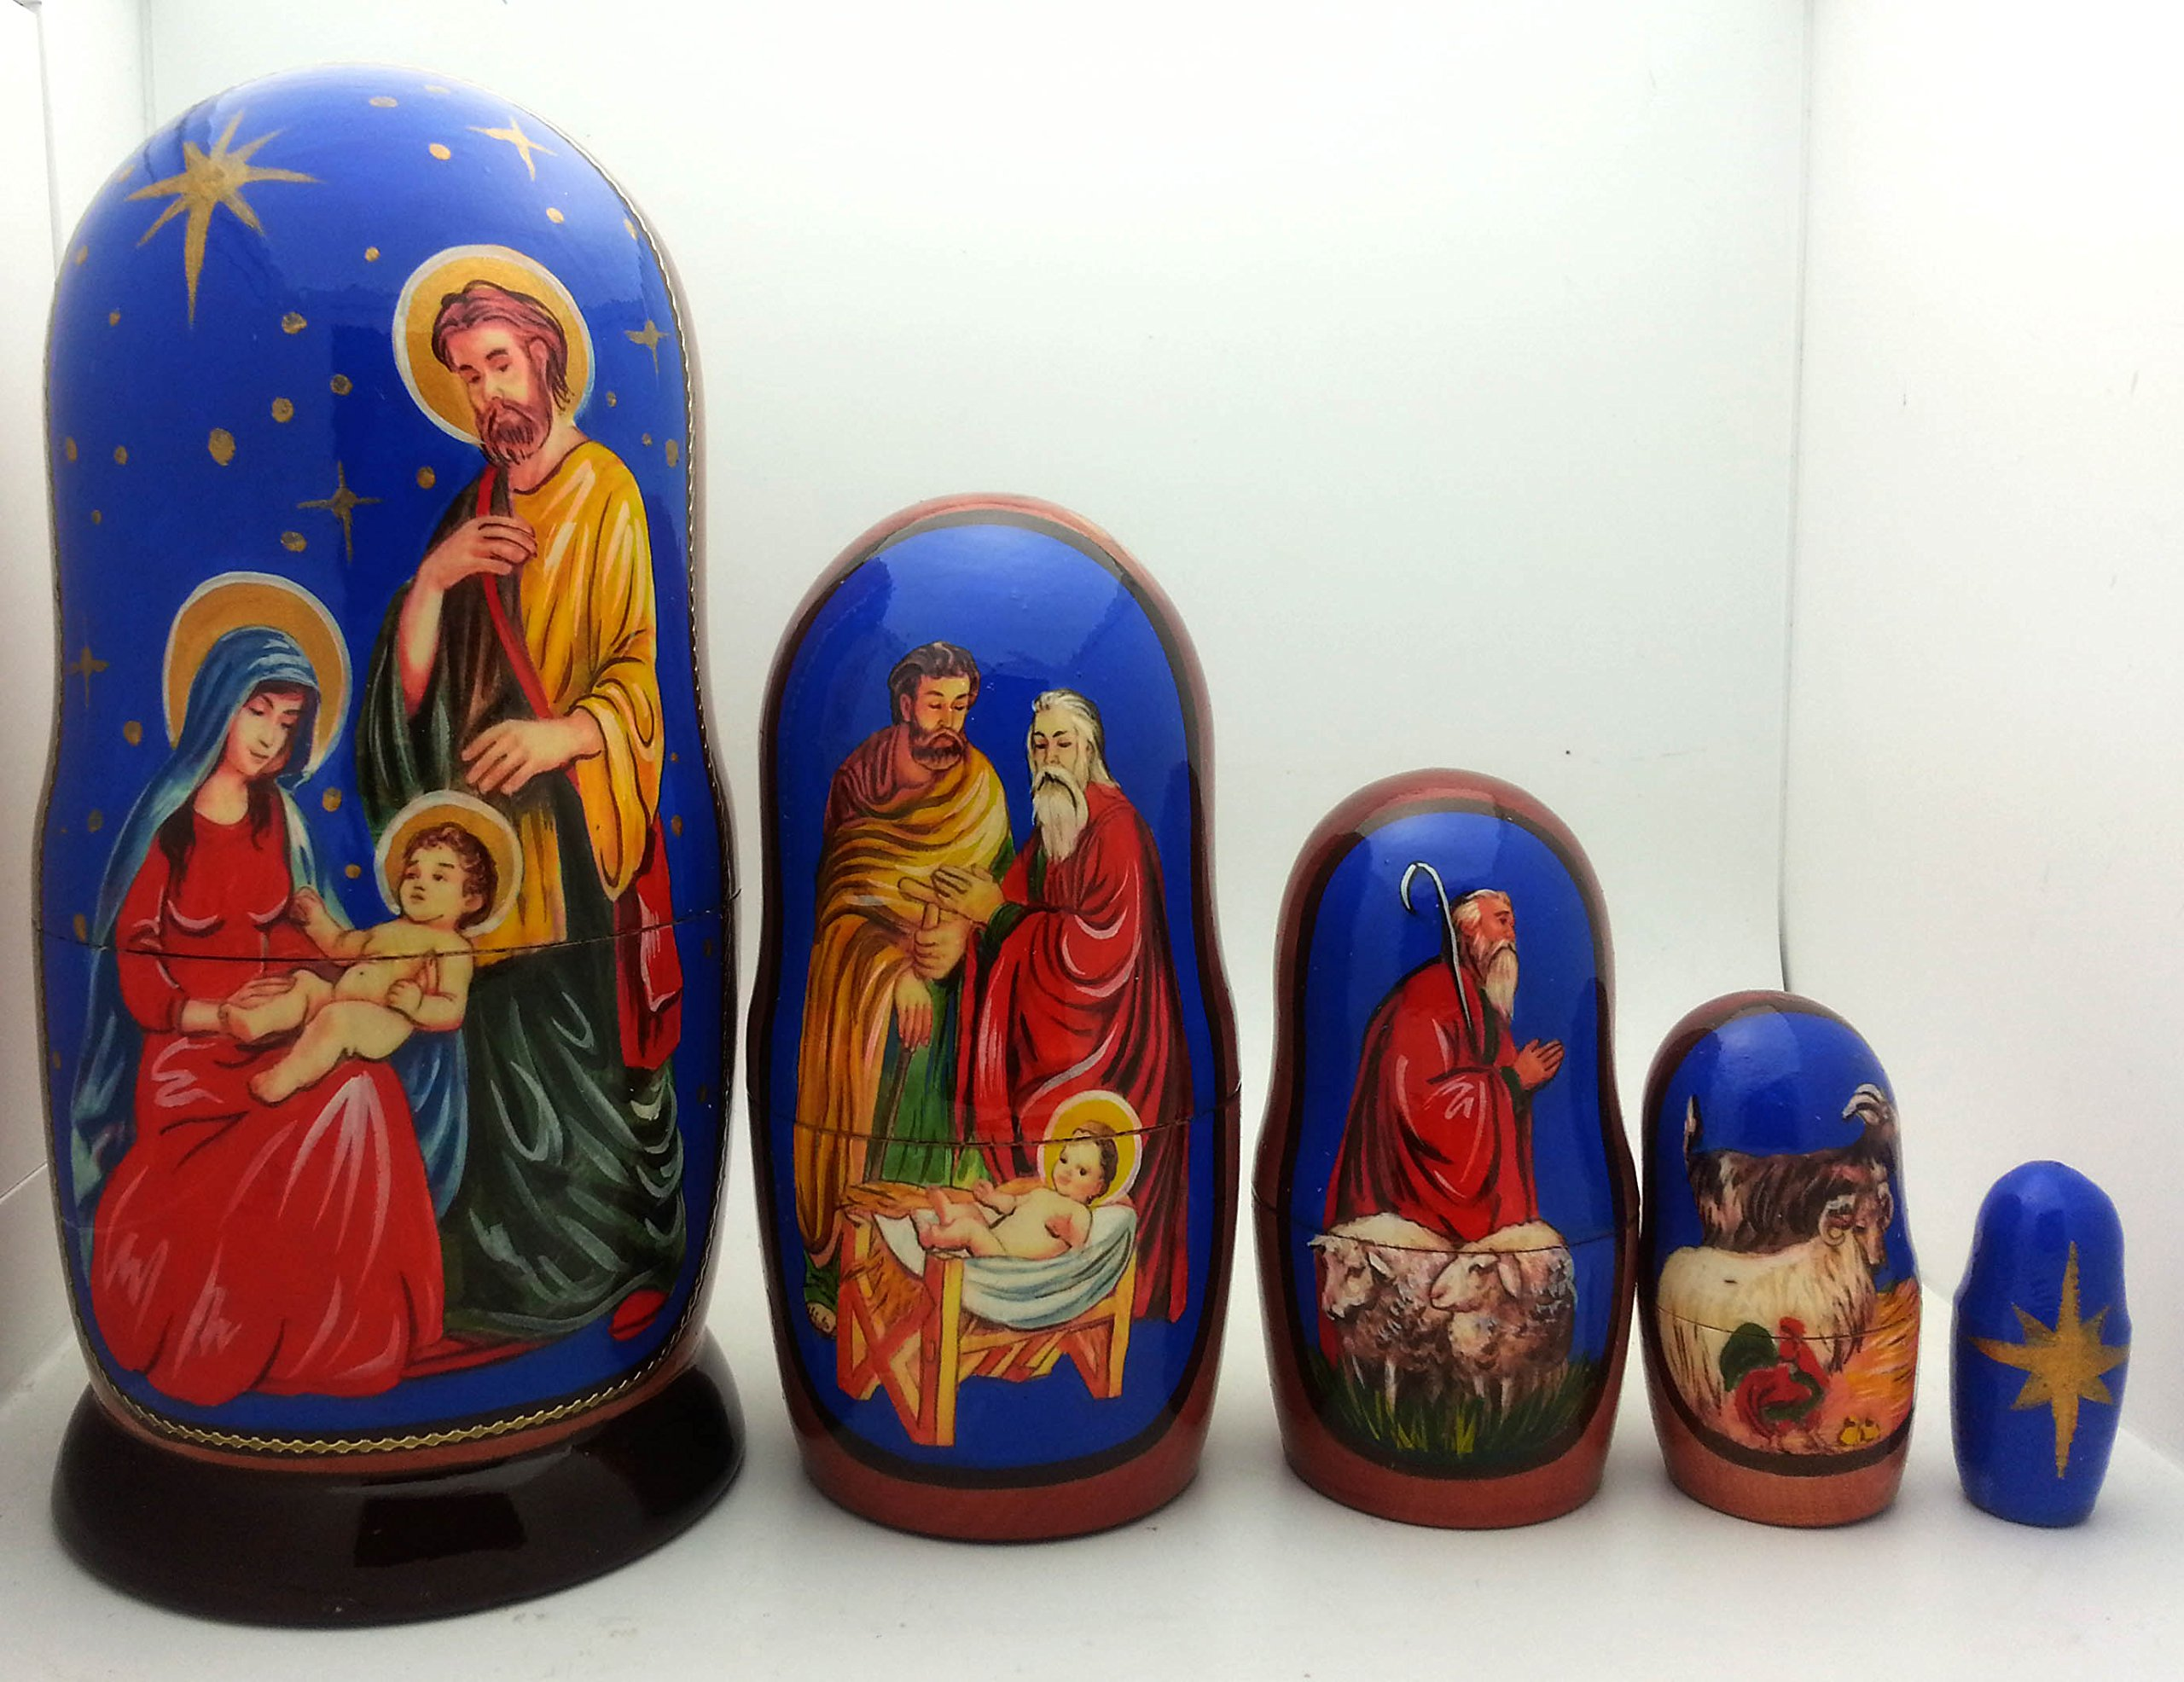 Nativity Nesting Doll Hand Made in Russia 5 Piece 4'' tall Set